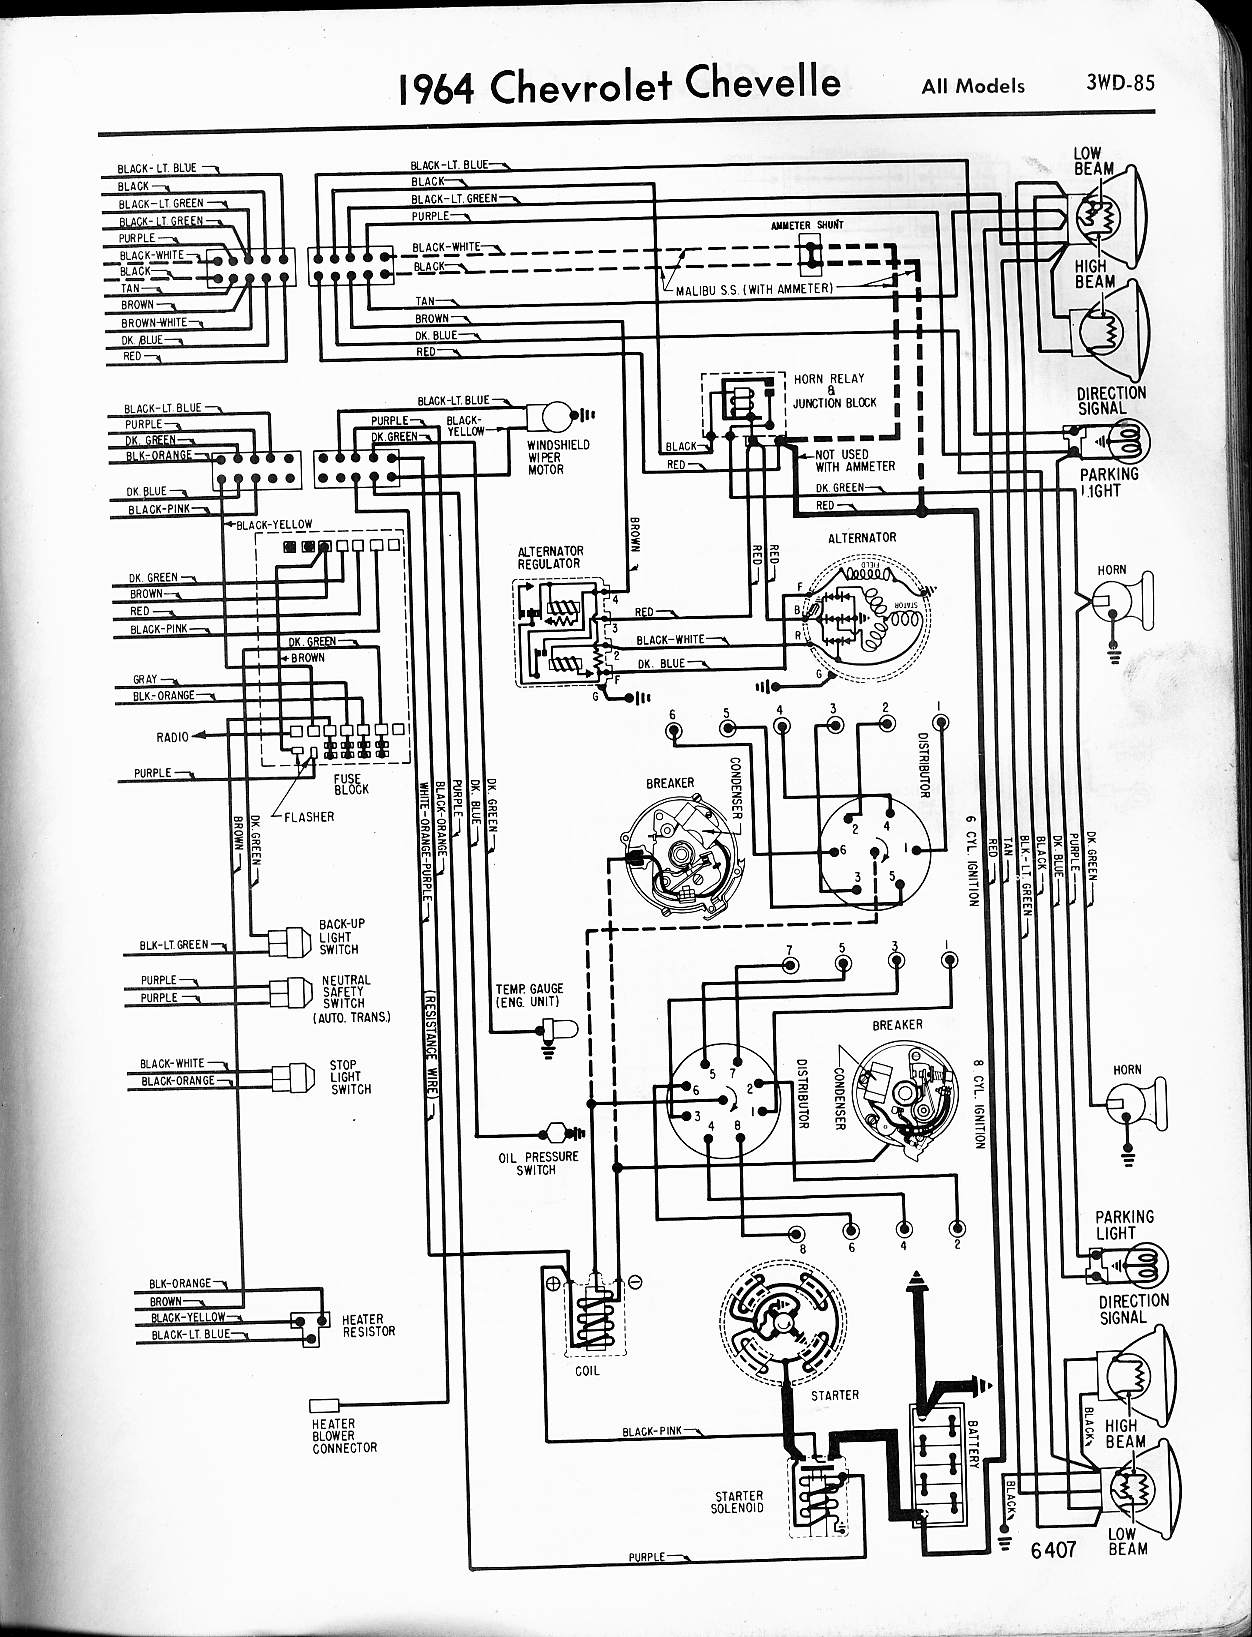 1964 gmc wiring diagram schematic diagrams rh ogmconsulting co 1988 GMC  Truck Wiring Diagram 1969 gmc truck wiring diagram